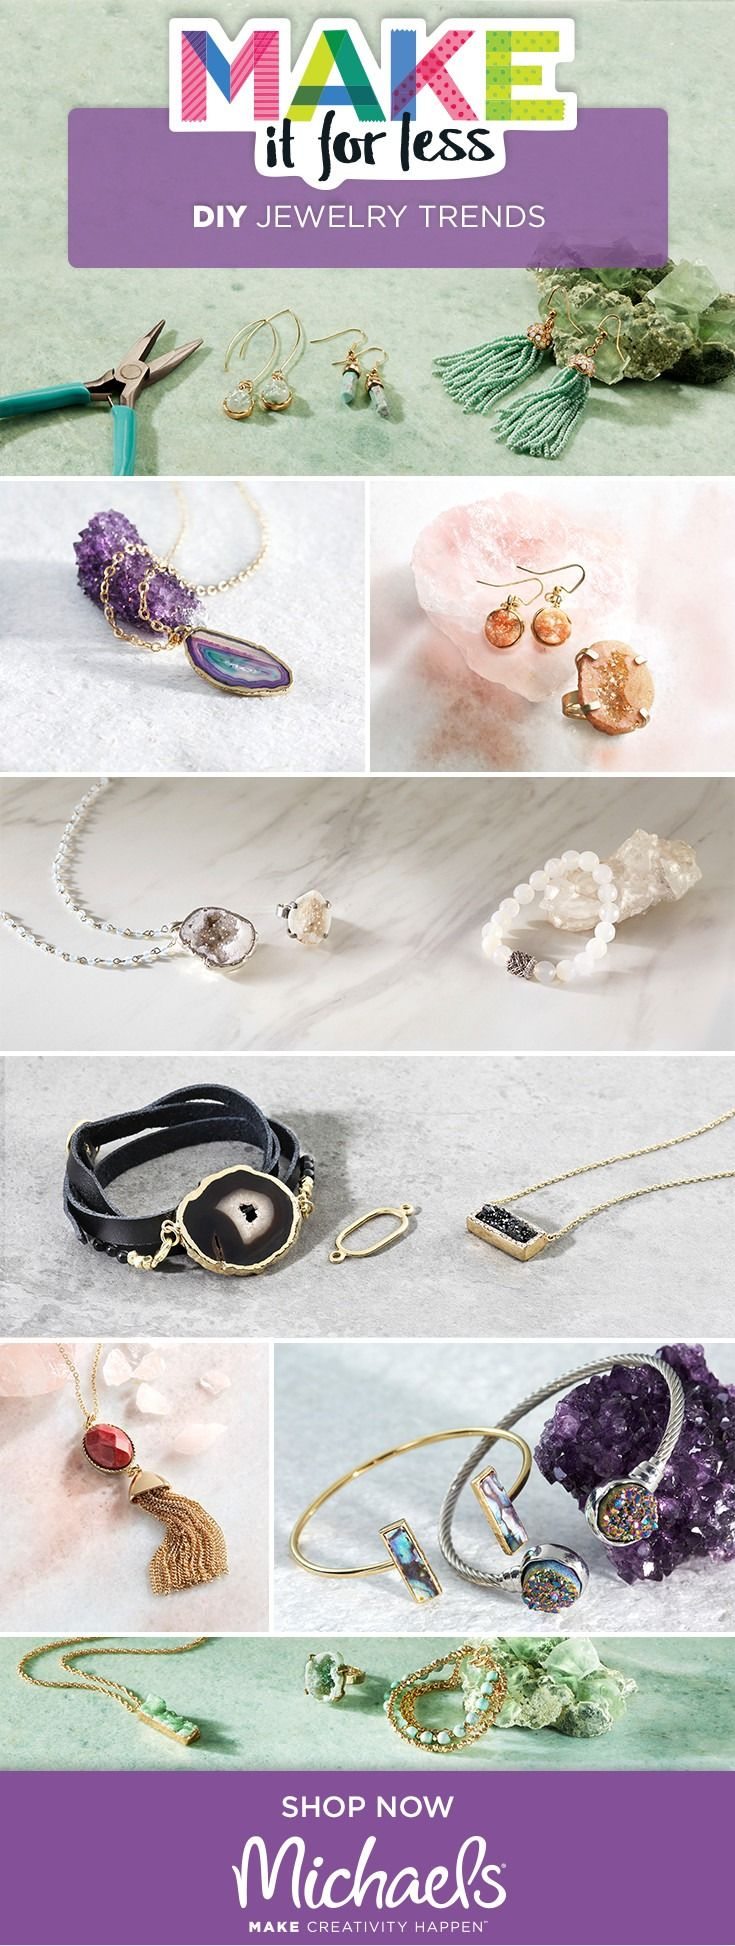 Accessories are everything. MAKE a statement this spring by making what's trending: tassels and stone jewelry! Designing your own jewelry is so simple you can do it in just 3 easy steps. Find all the supplies you'll need to DIY necklaces, earrings, bracelets, and more for less at Michaels.